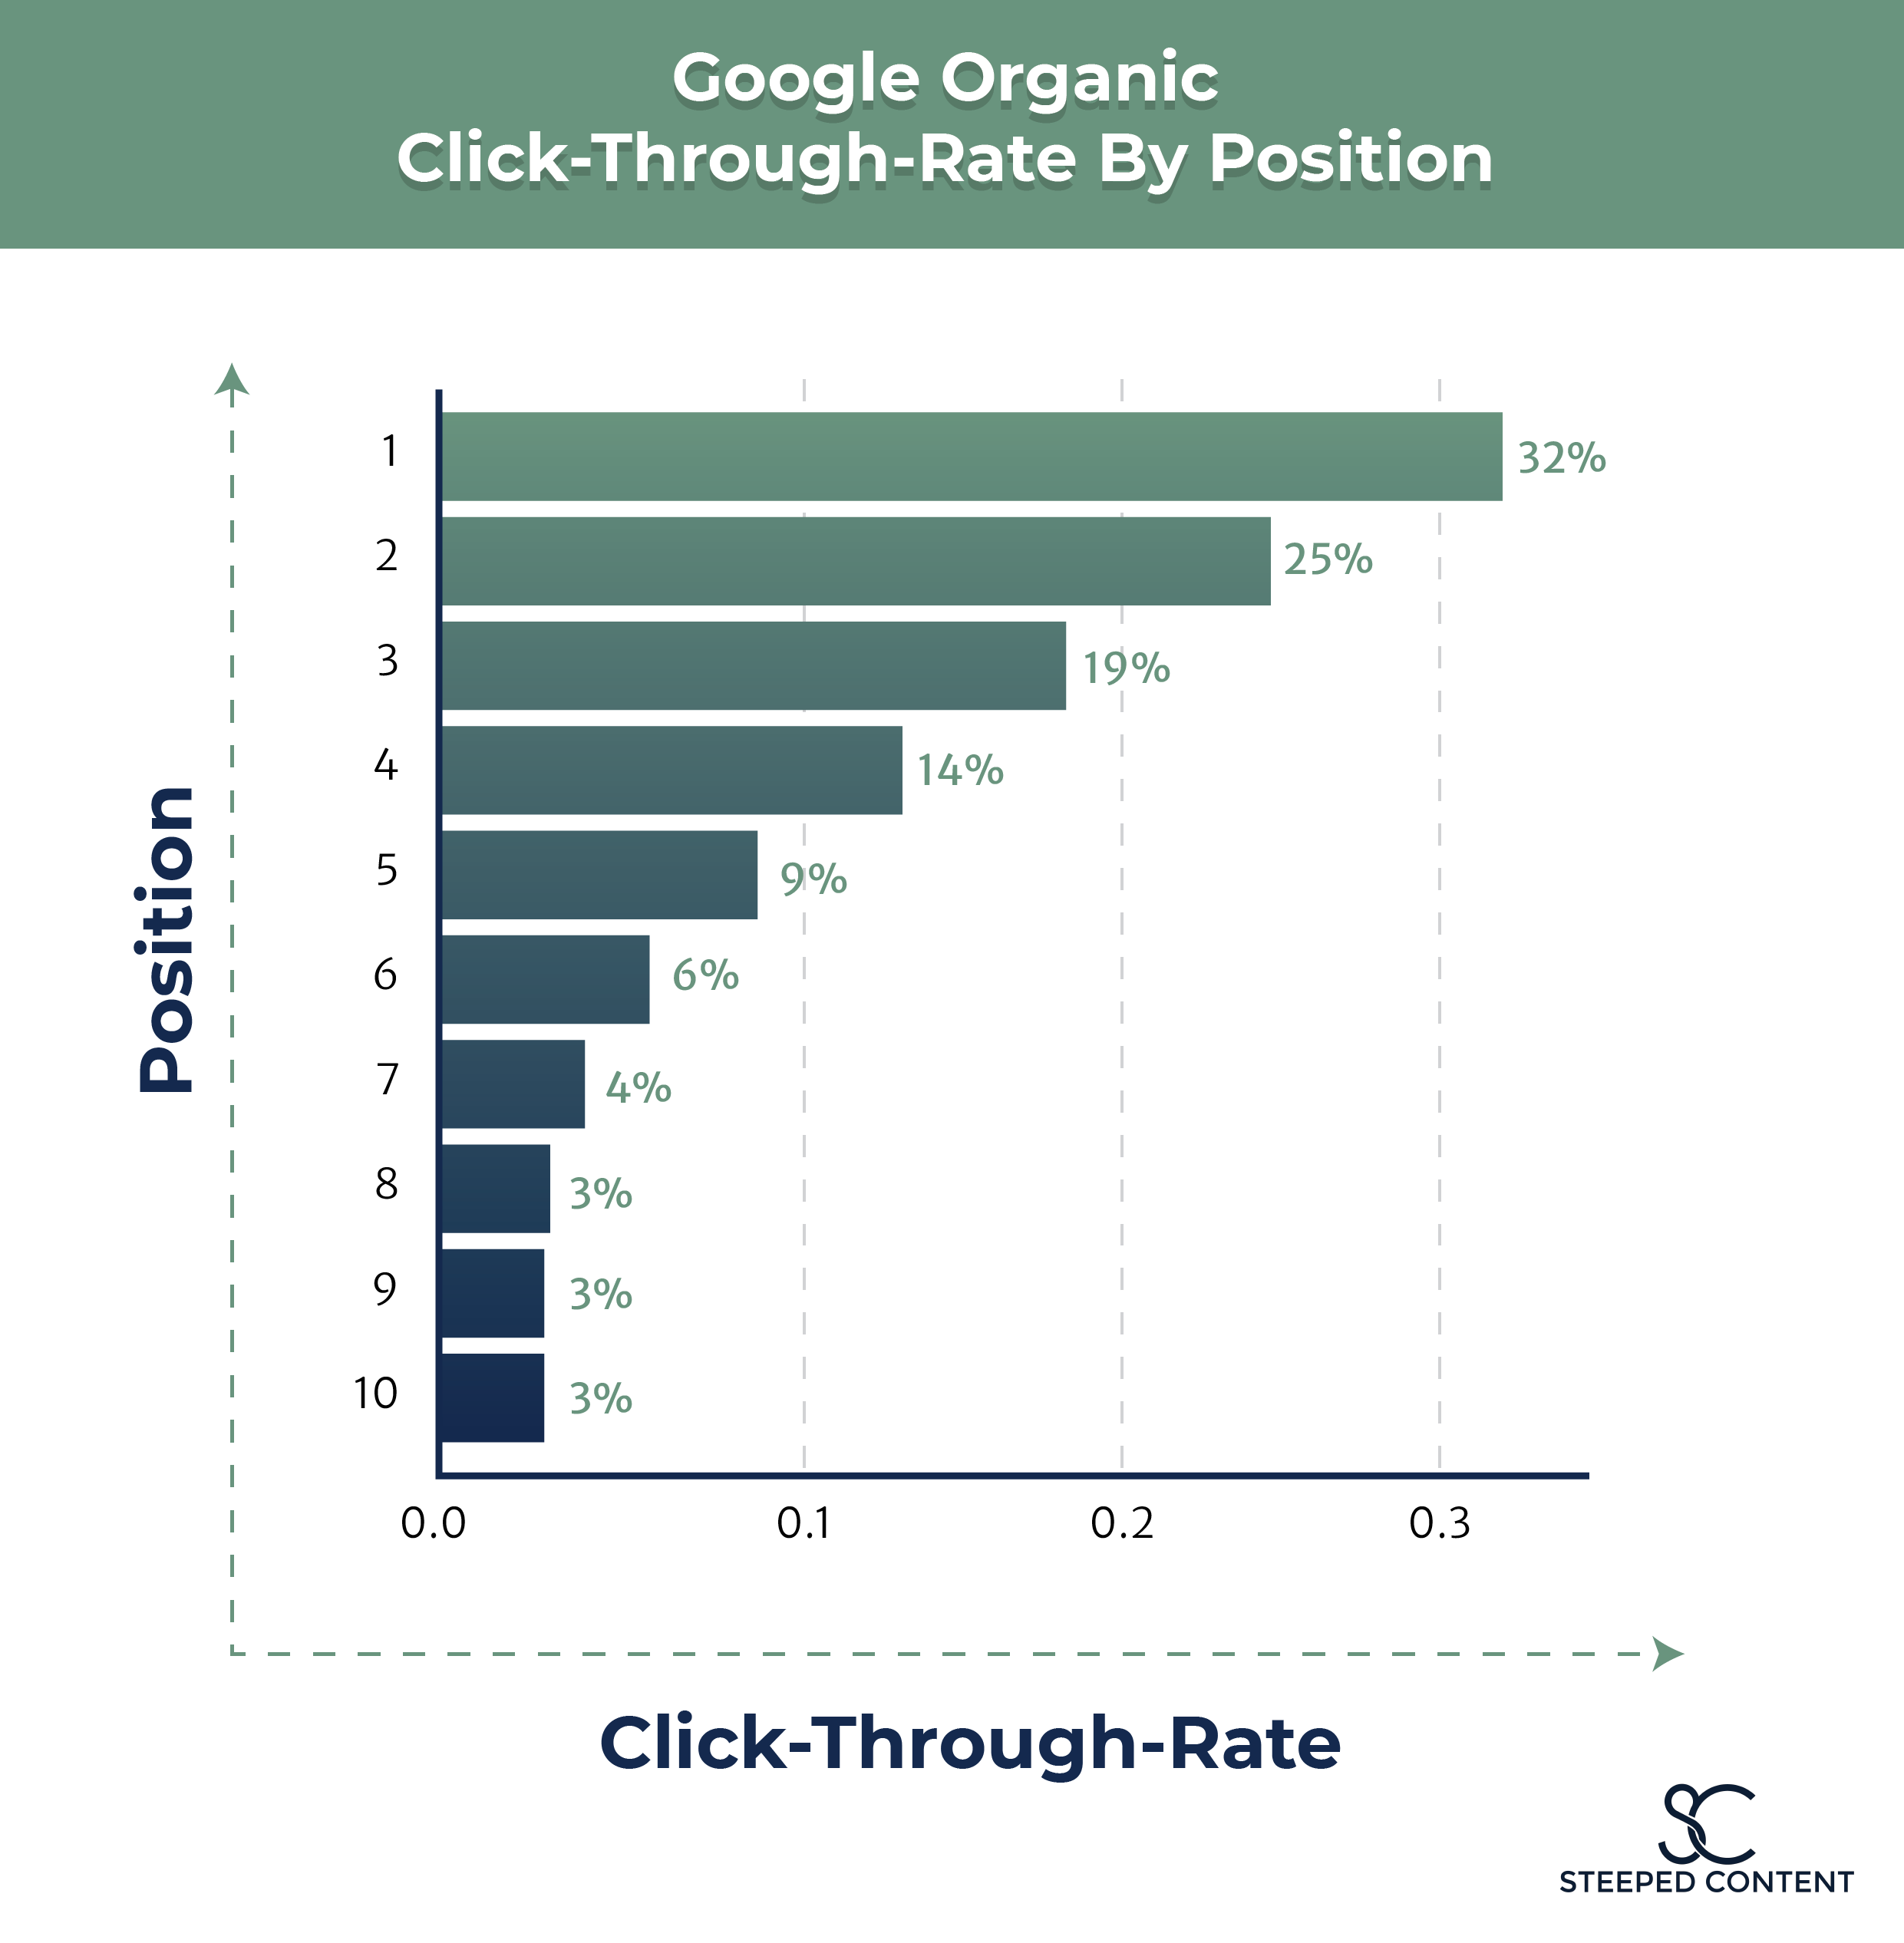 A graph depicting Click-Through-Rate By Position for the top ten positions on the search engine results page.